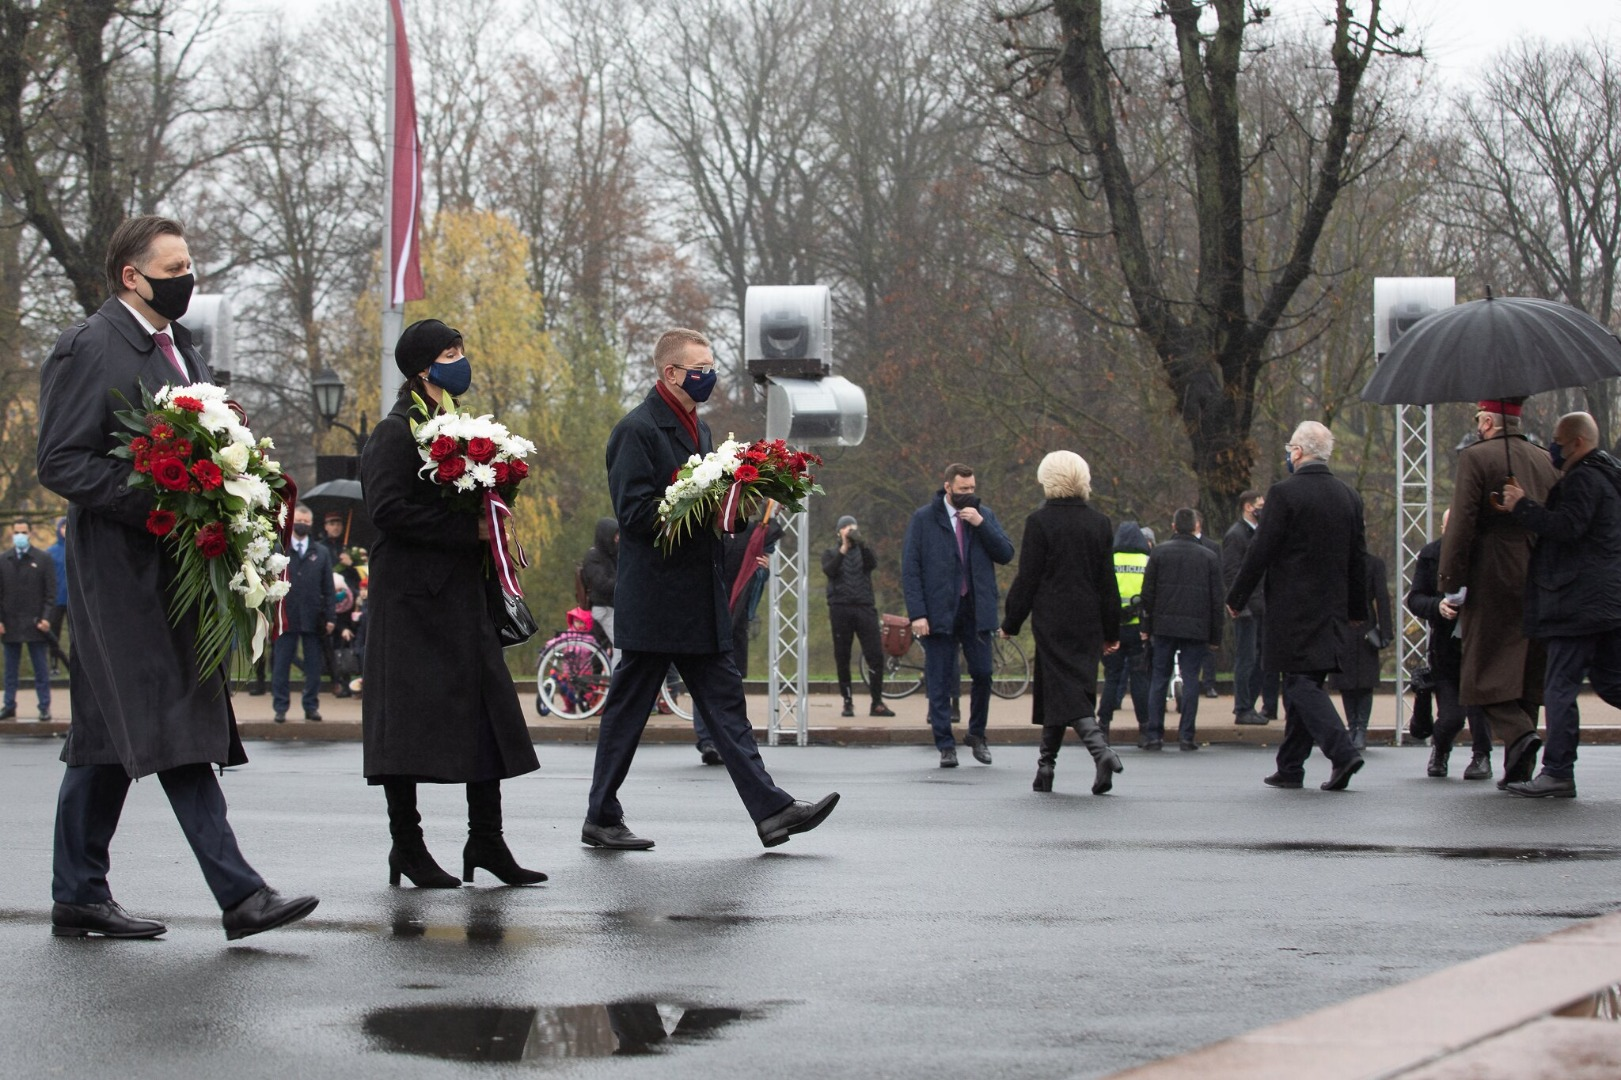 18.11.2020. The judiciary – Aigars Strupiss, Chief Justice of the Supreme Court, and Sanita Osipova, President of the Constitutional Court, by the Freedom Monument